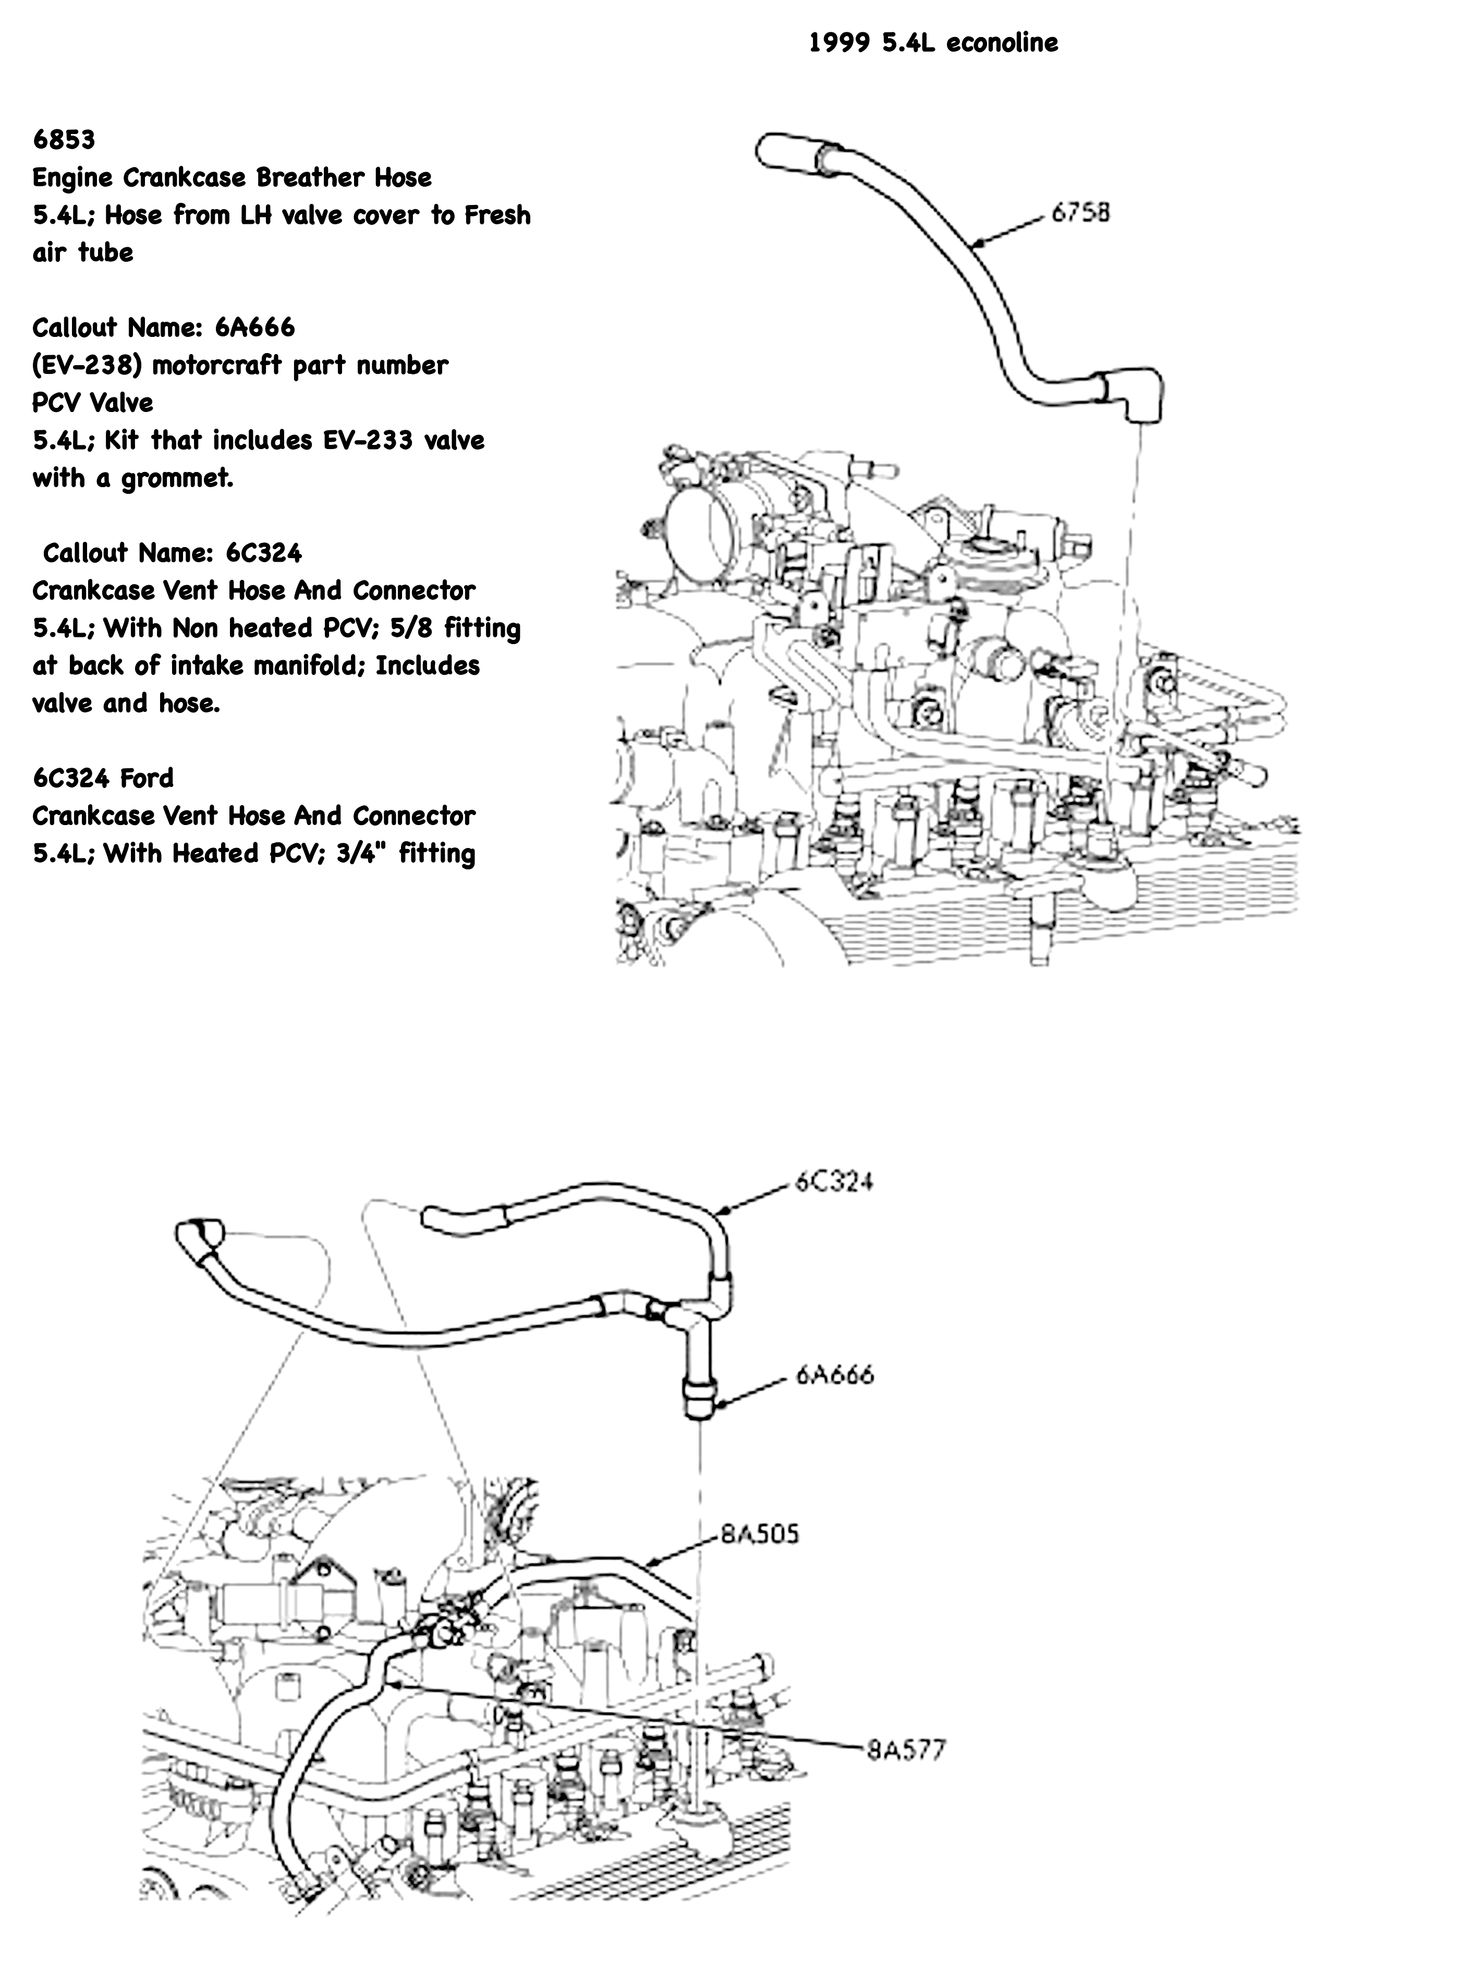 4 2l Ford Engine Intake Diagram 2002 F150 4.6L Engine Diagram Wiring Diagram ~ Odicis